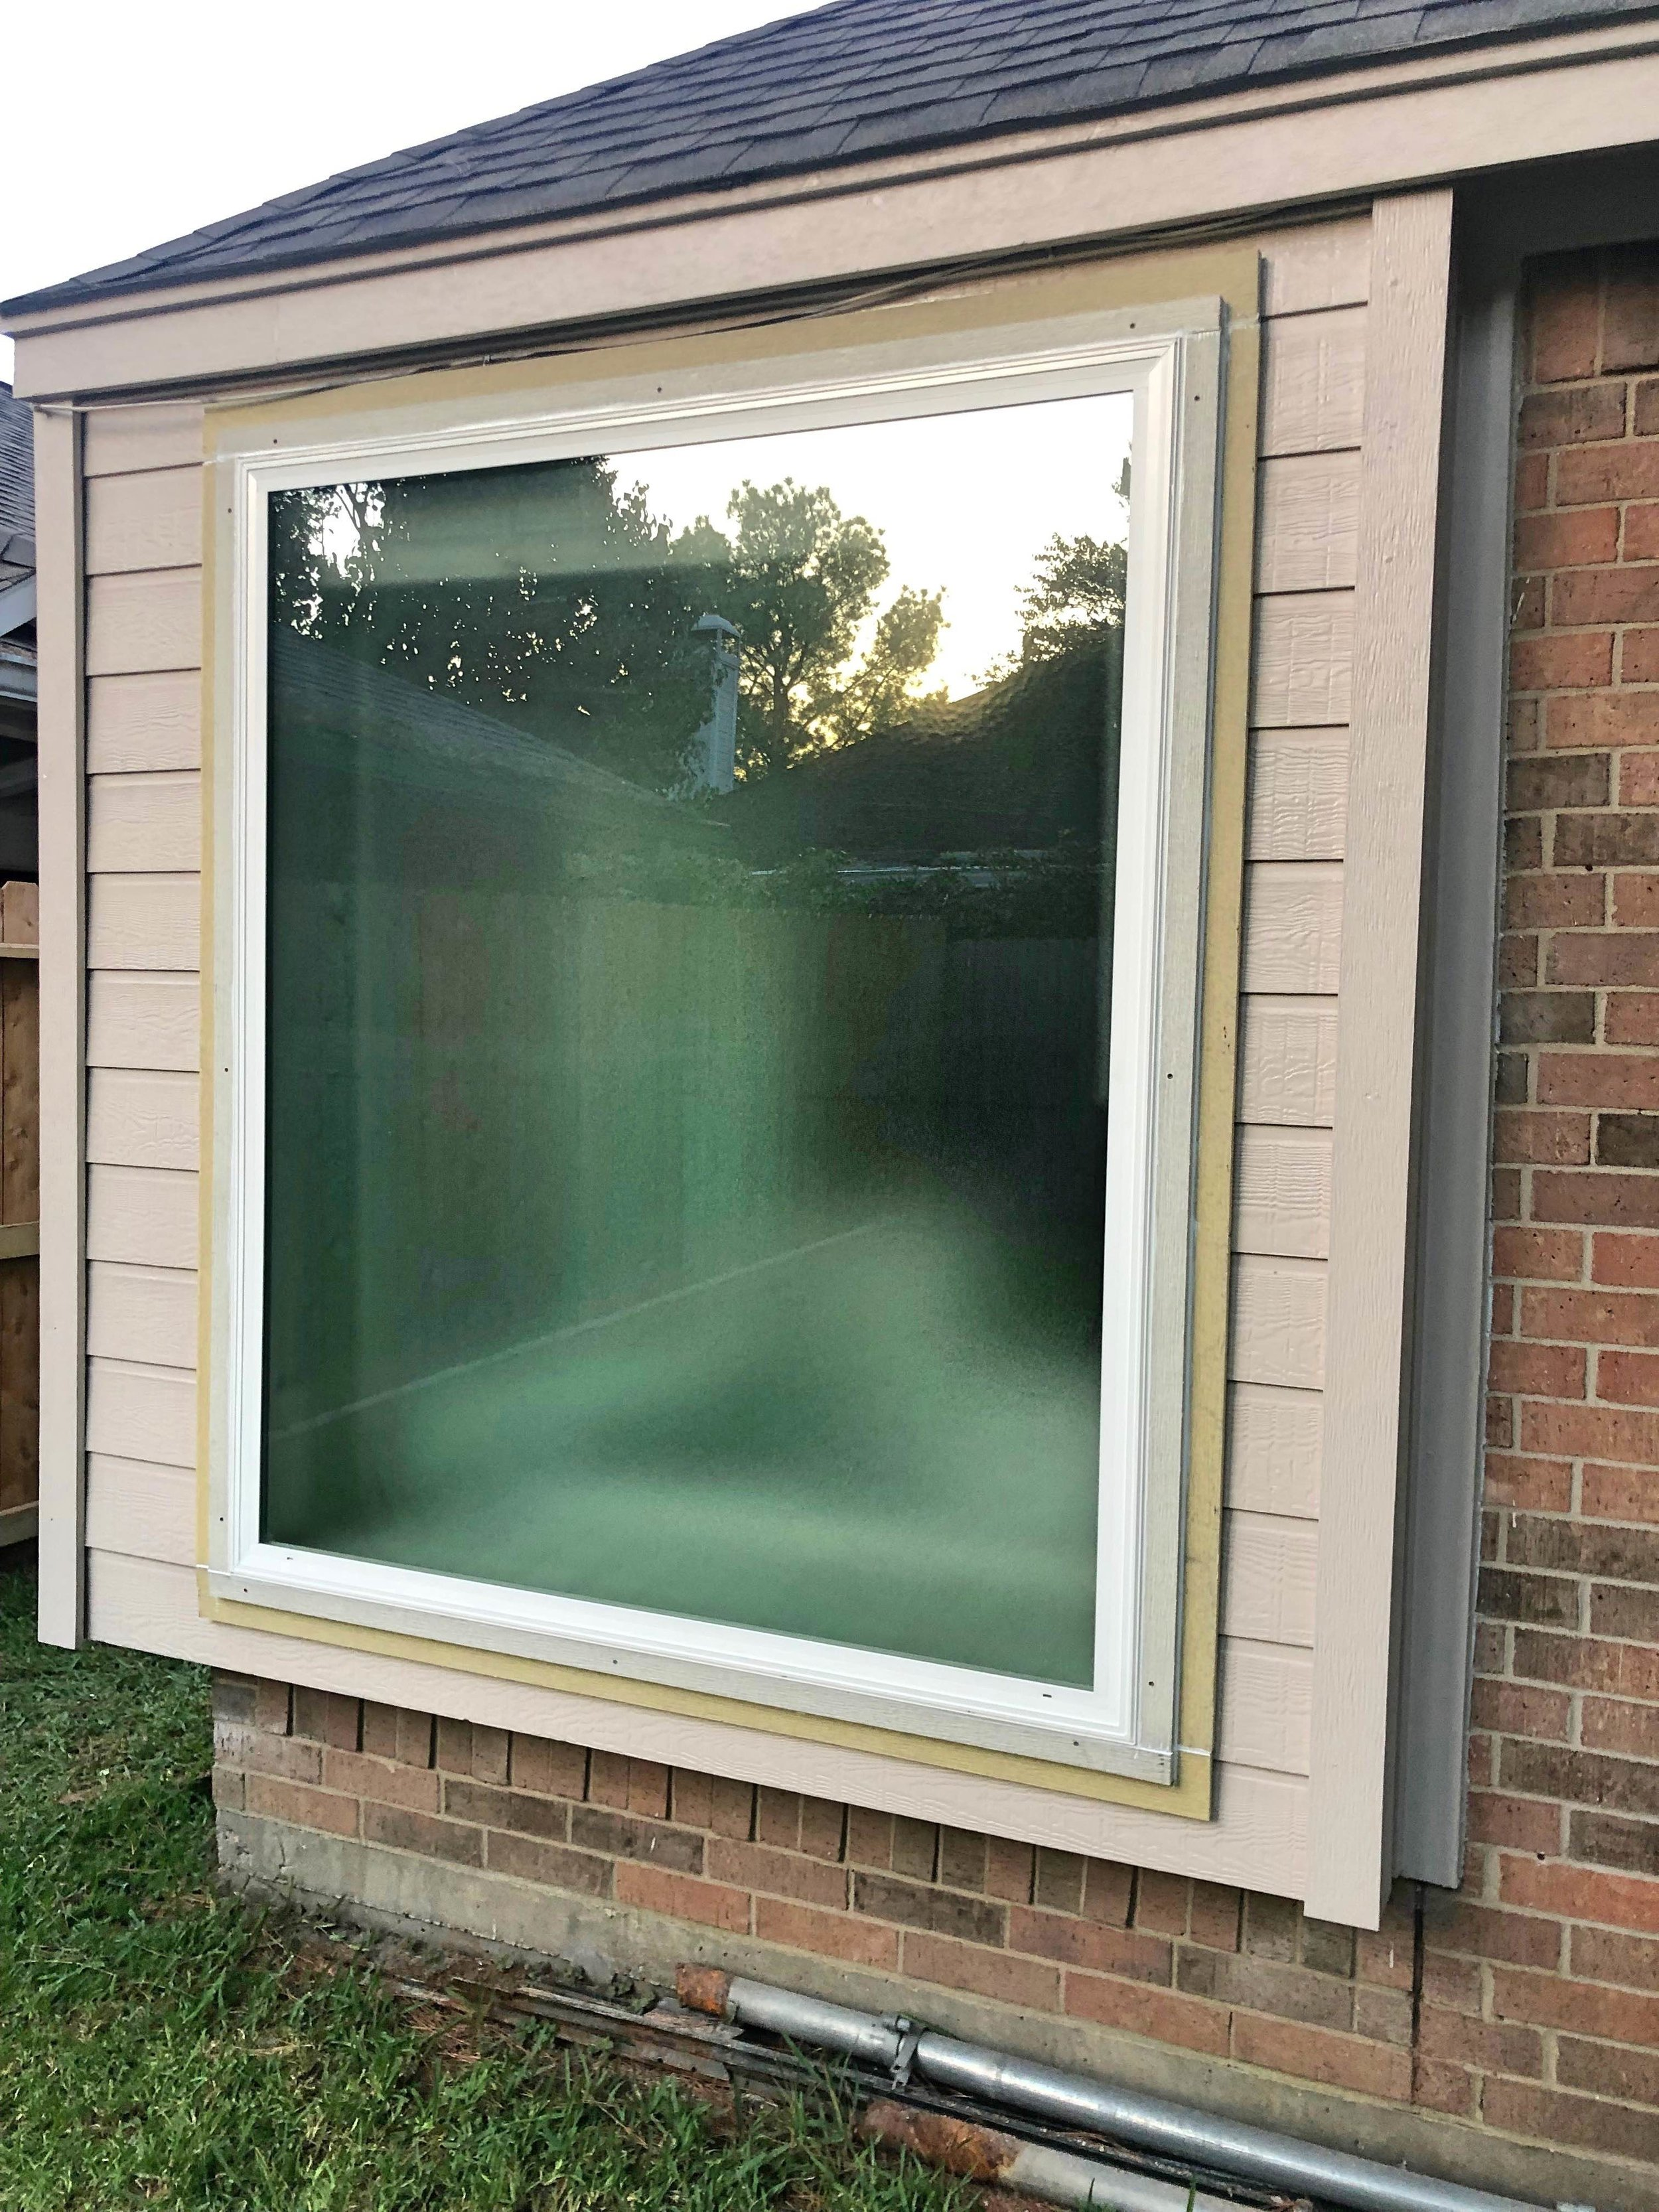 Privacy Windows - These windows are great for bathrooms! They let in light, are energy-efficient, but blur out the inside so you have privacy. You can see the outline of the tub inside to see how it works.